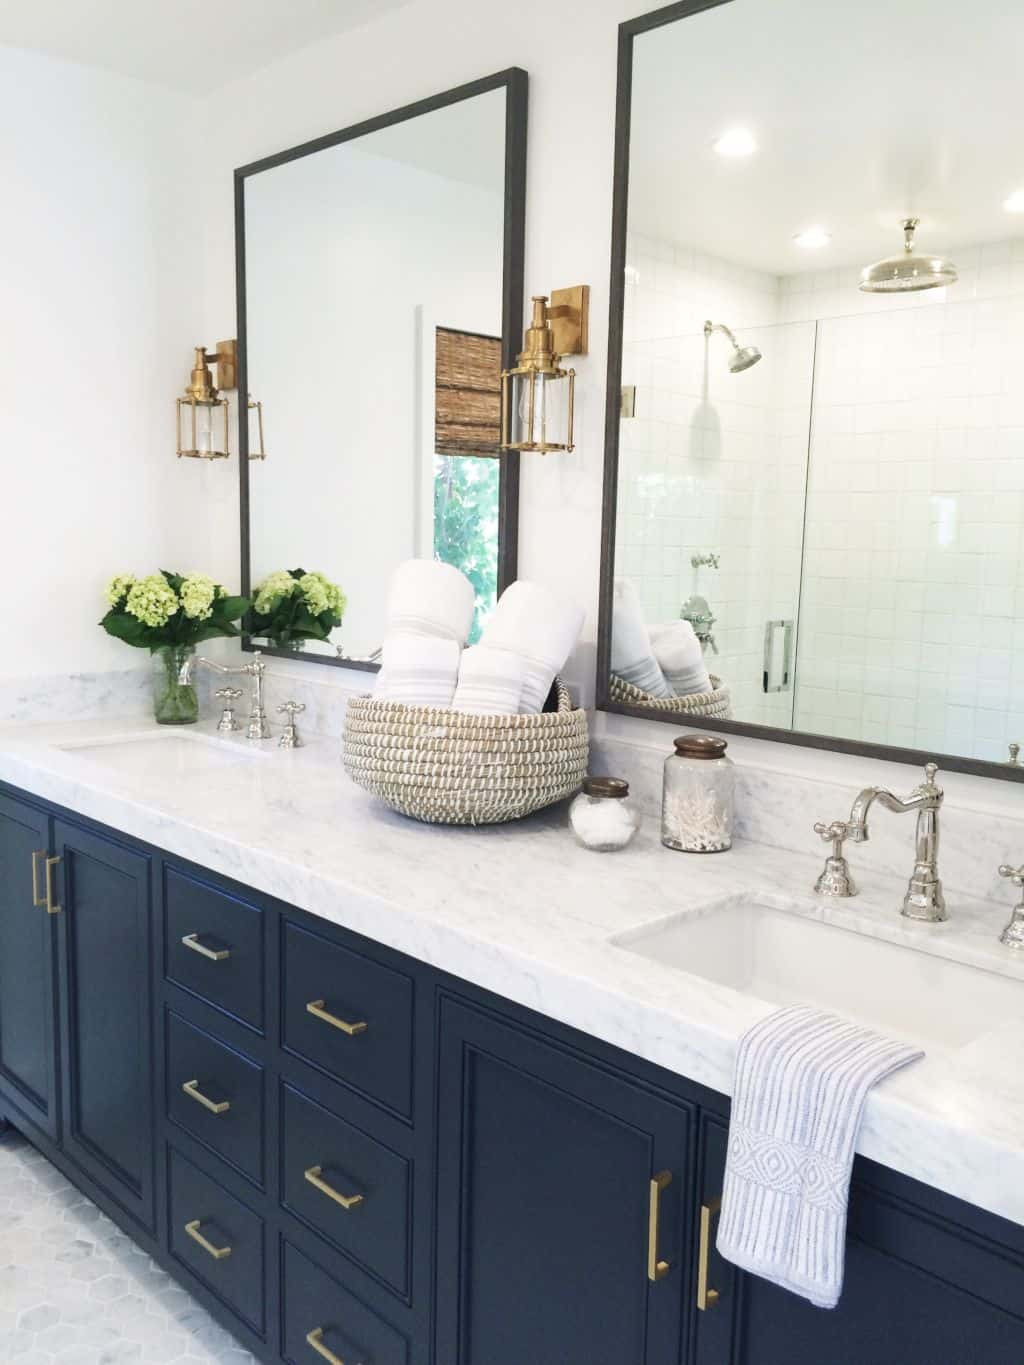 Double Sink Bathroom Decorating Ideas Awesome 19 Double Vanity Bathrooms that Will Make Your Lives Easier